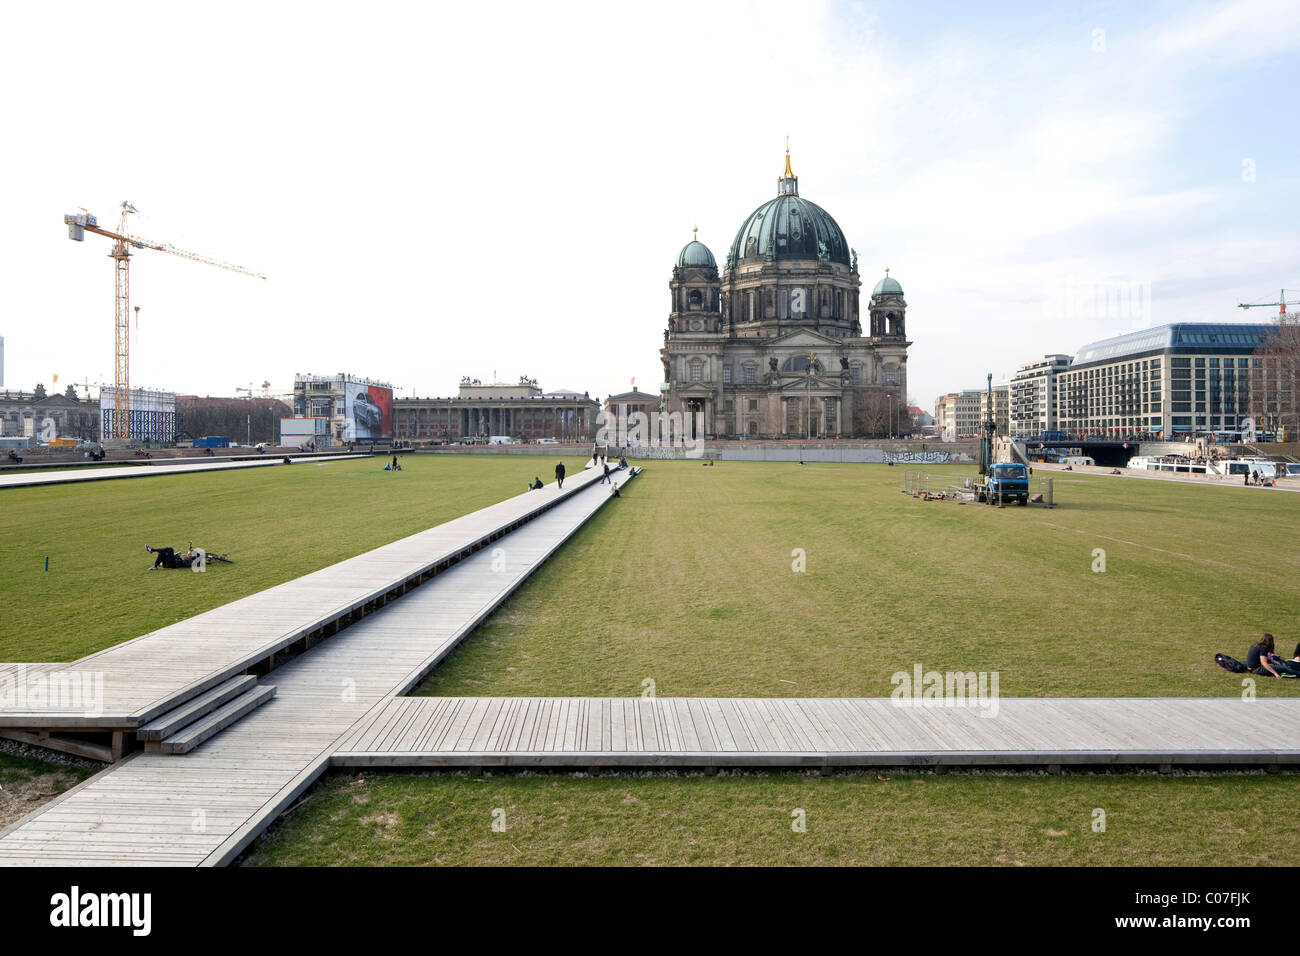 Schlossplatz square, temporary use as a park, Berliner Dom cathedral in the back, Mitte district, Berlin, Germany, - Stock Image